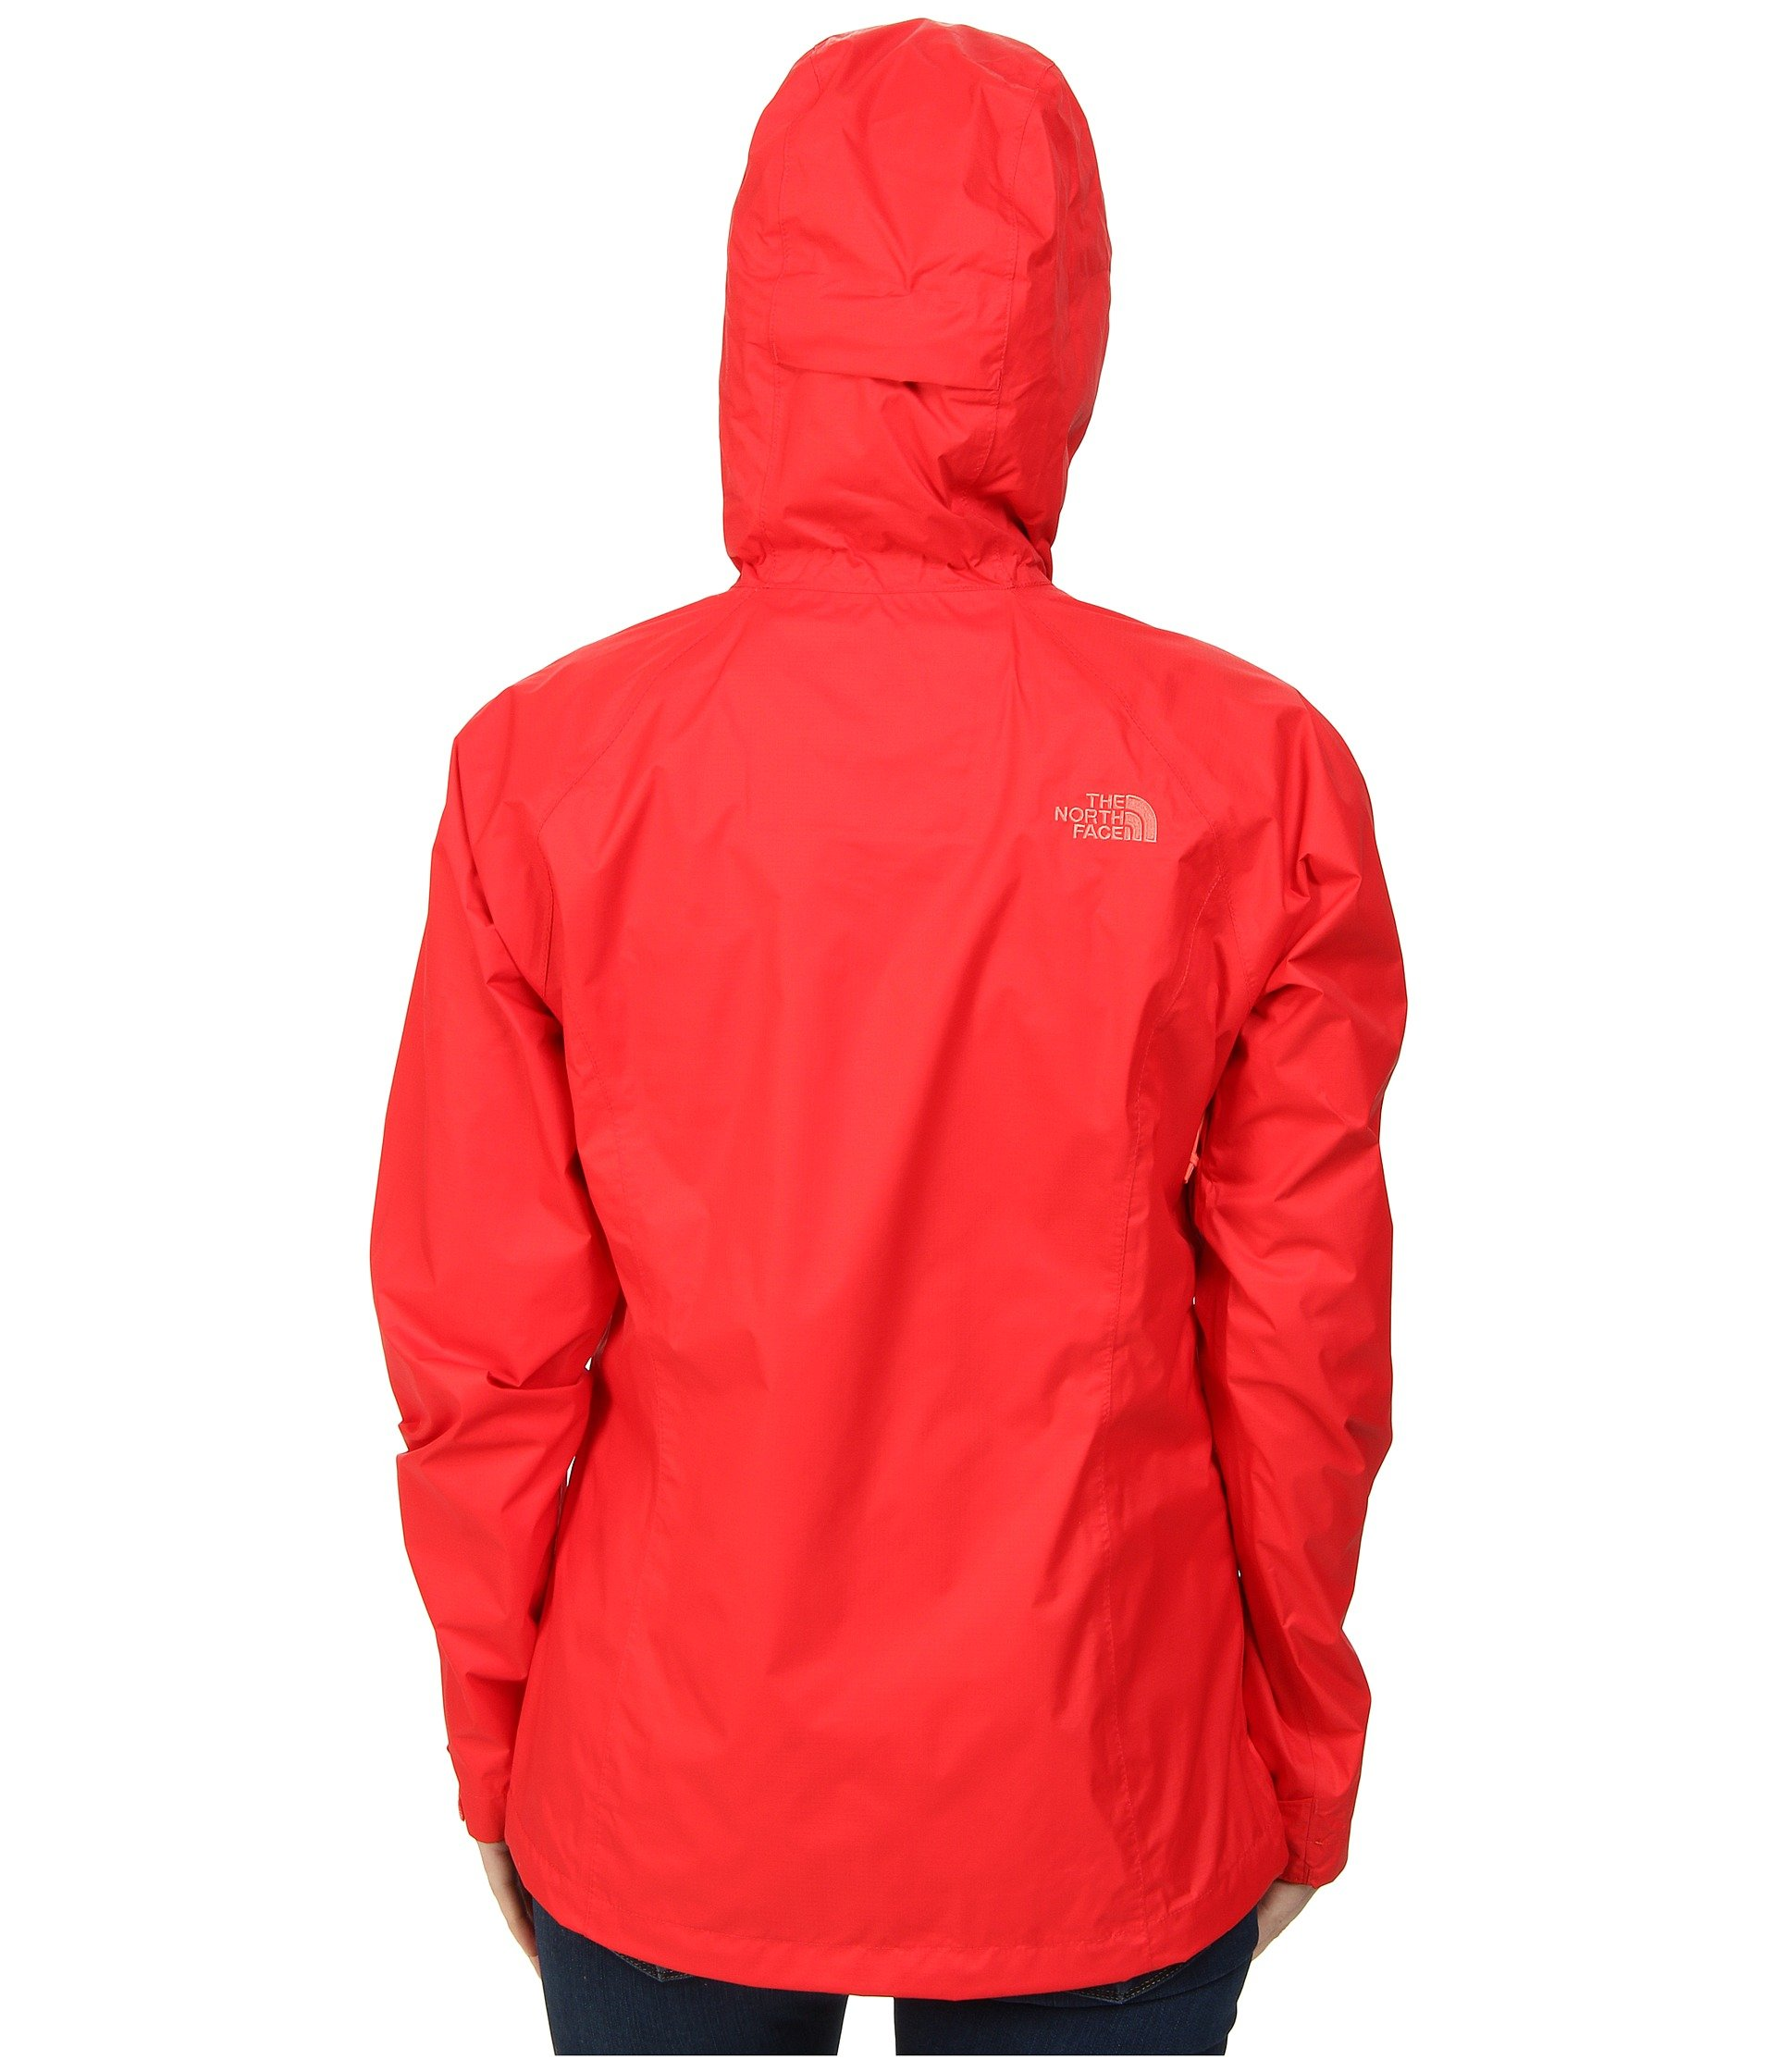 f95baf2bc8b0 ... release date lyst the north face venture jacket in red 352ea 3ec58 ...